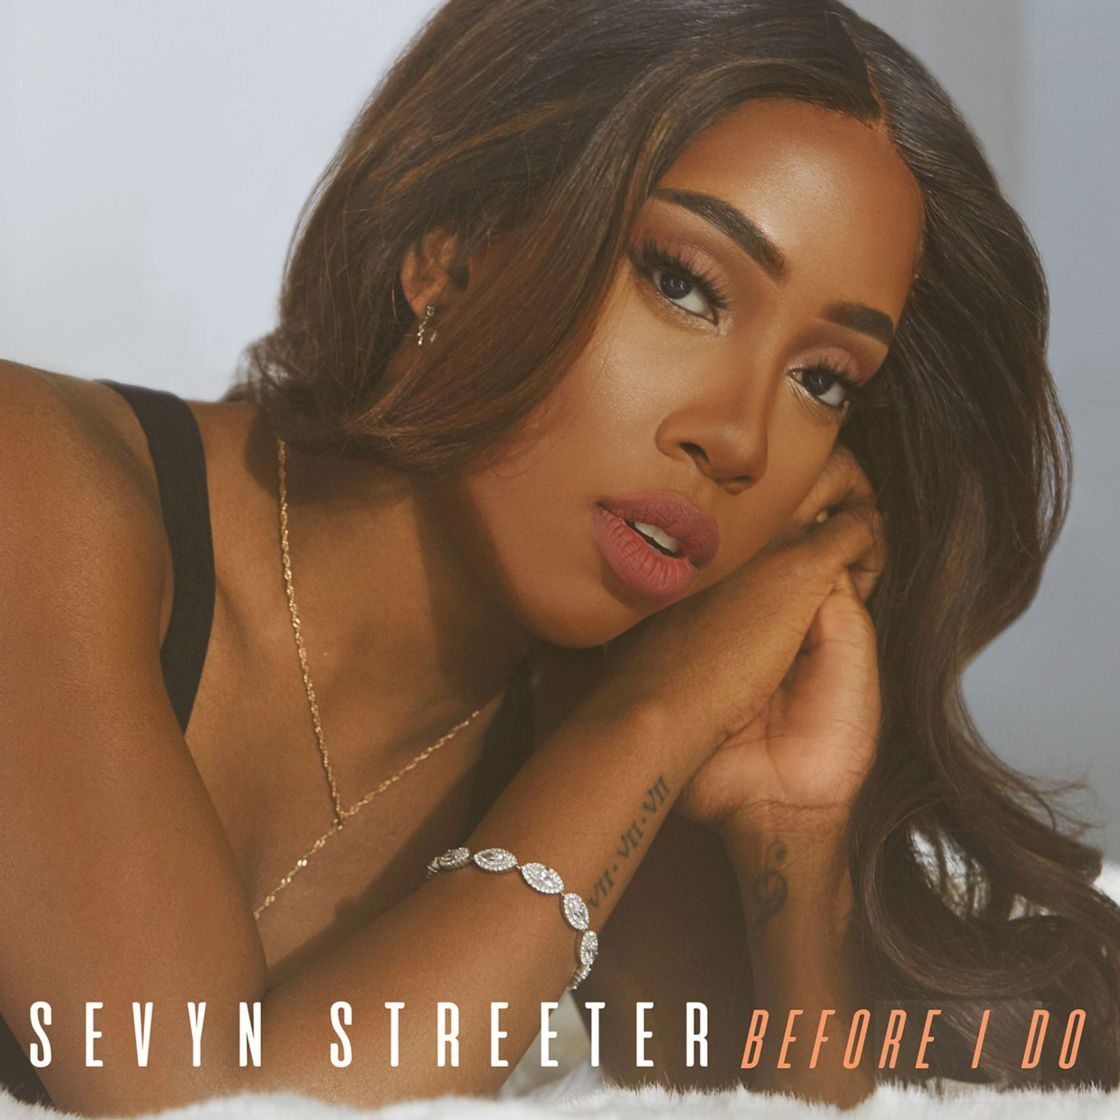 sevyn-streeter-before-i-do-2016-2480x2480